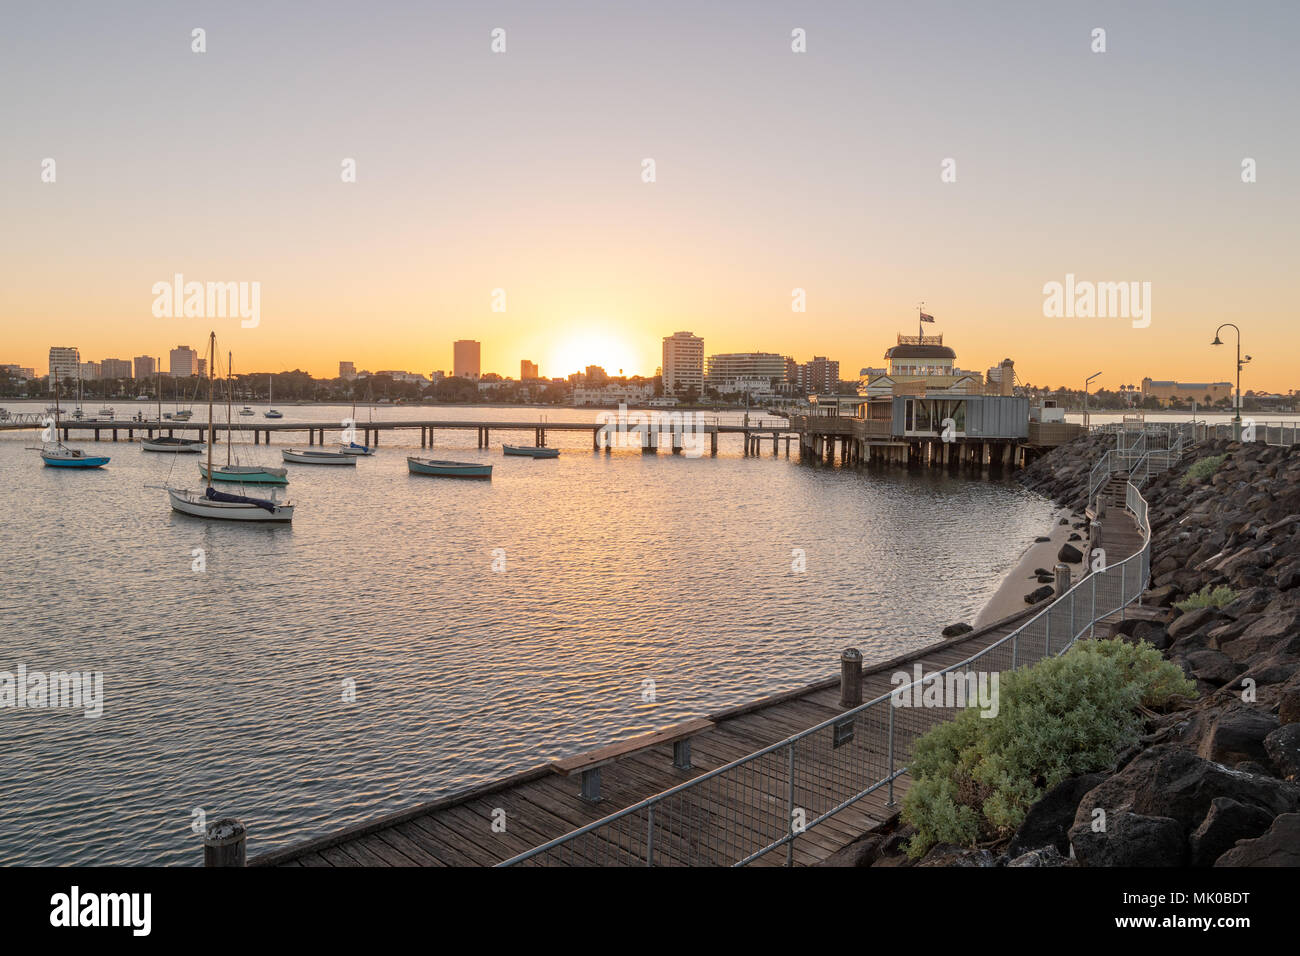 Sunrise over pier and town of St Kilda, Melbourne, Australia - Stock Image